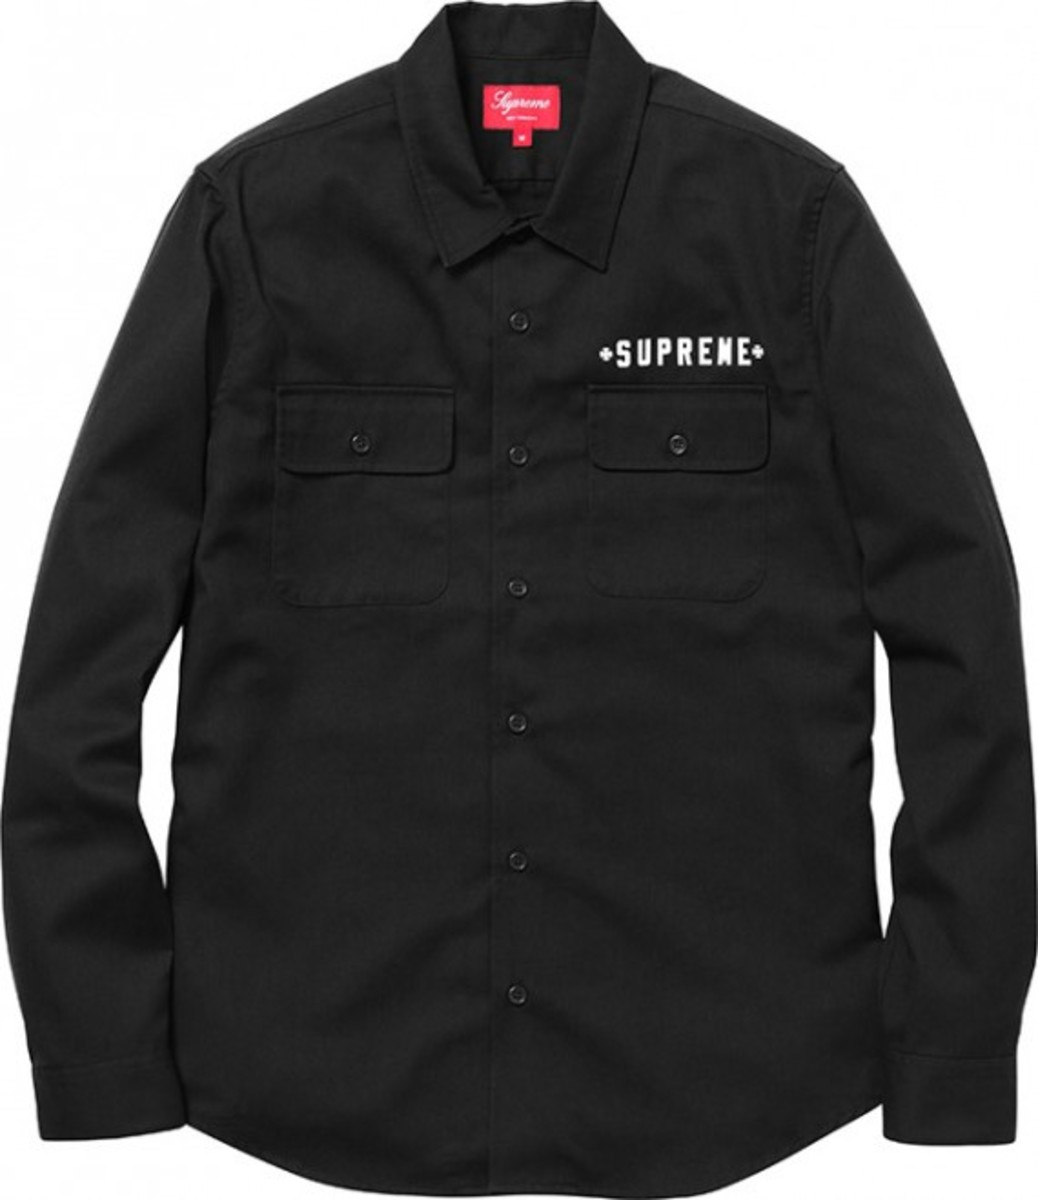 supreme-fall-winter-2012-apparel-18